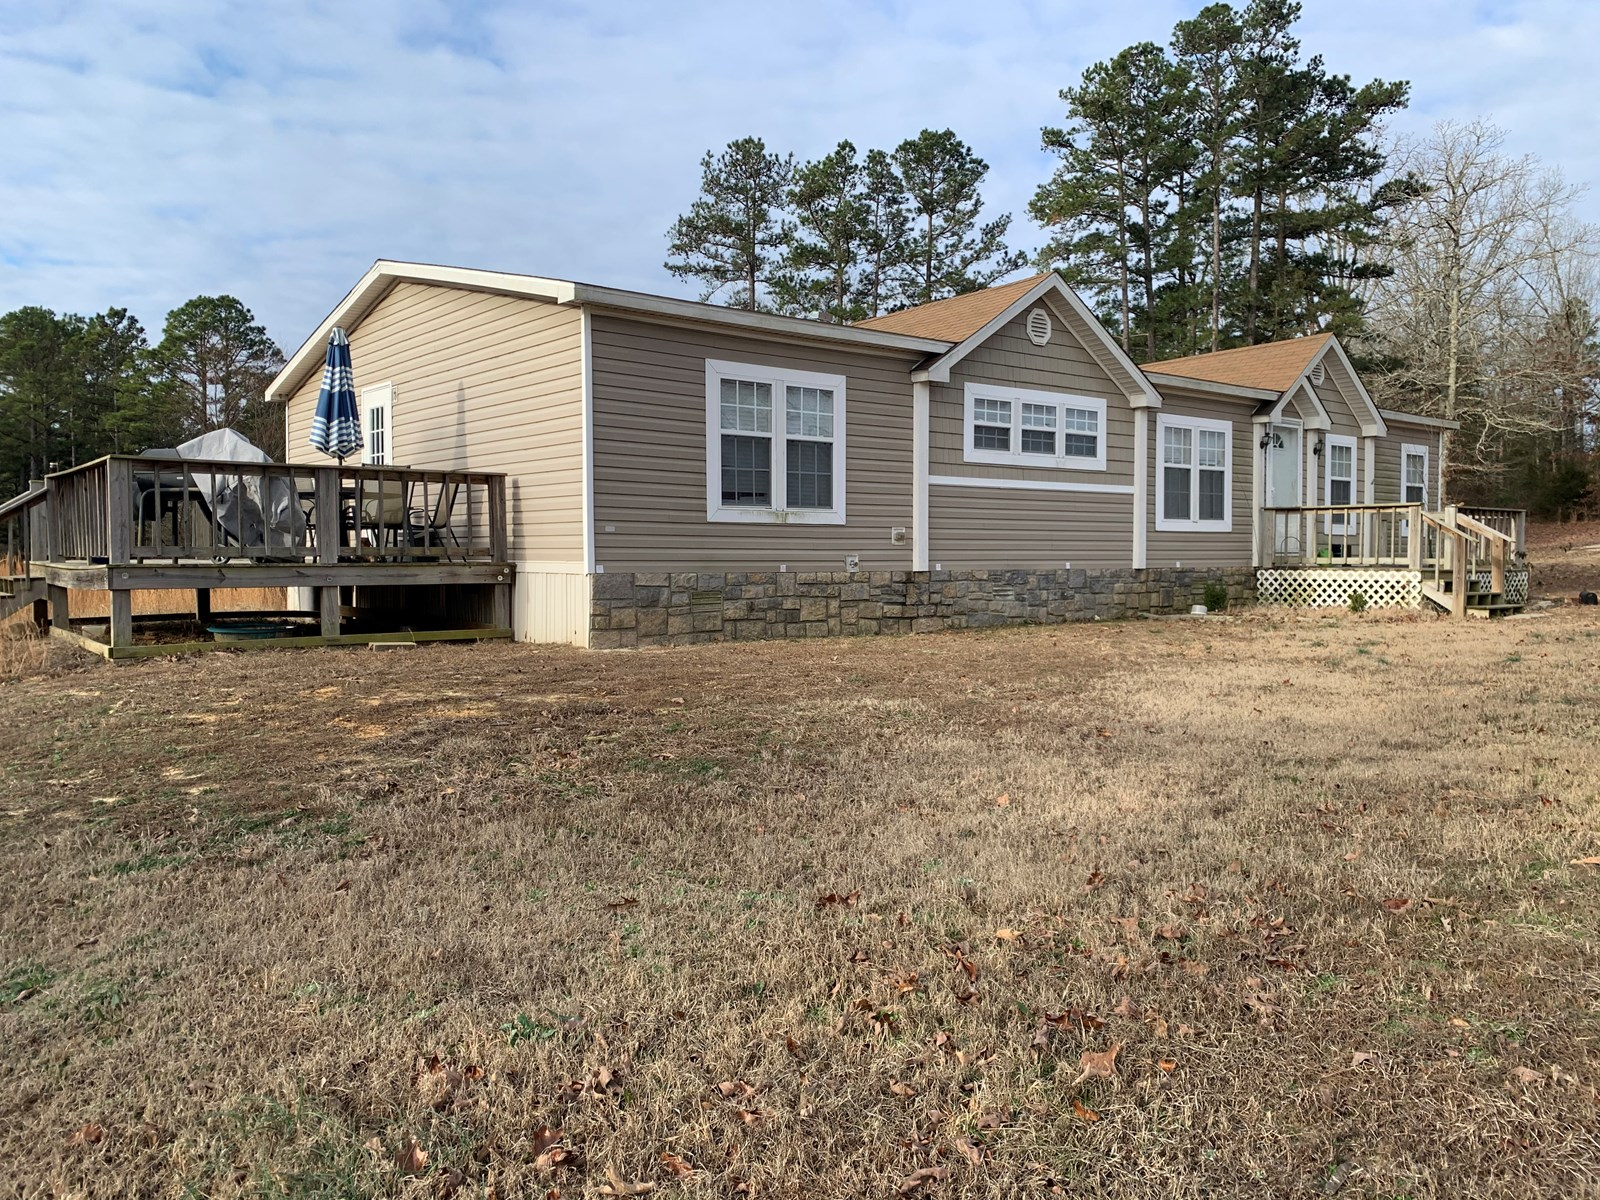 HOME FOR SALE WITH ACREAGE IN MELBOURNE, ARKANSAS